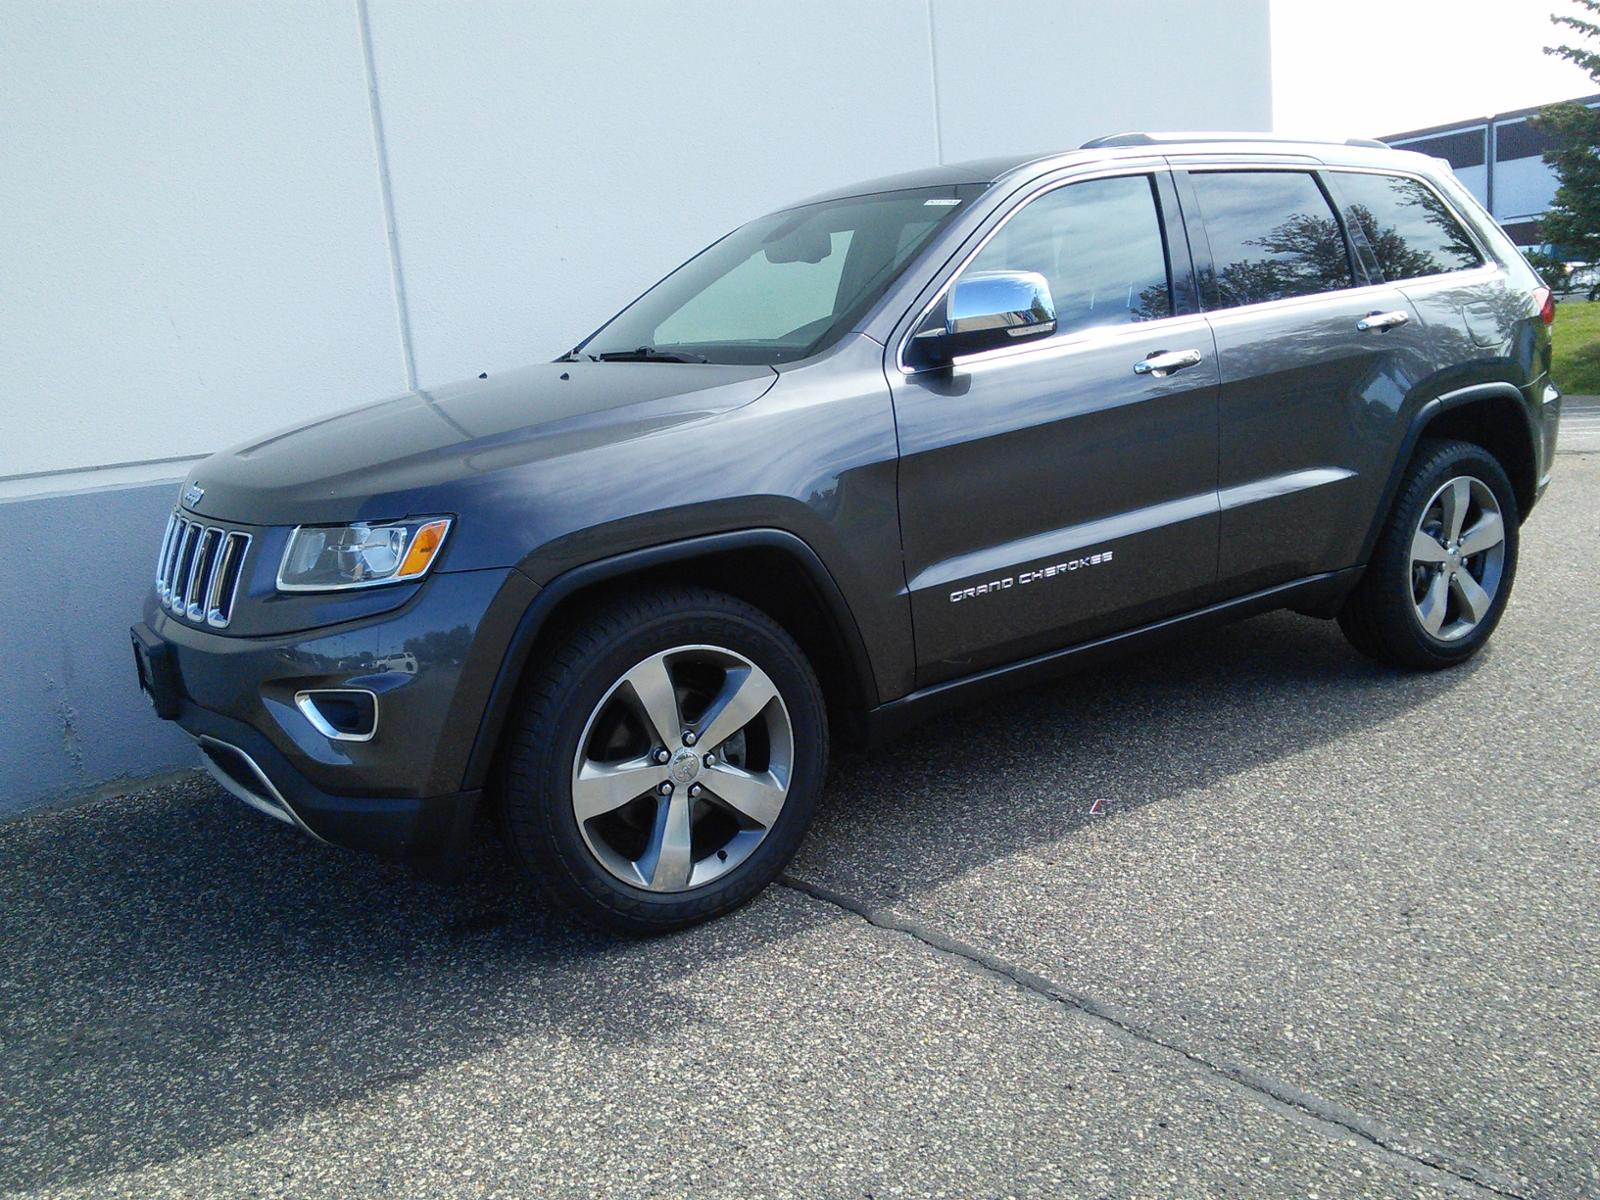 Used 2015 Jeep Grand Cherokee Limited with VIN 1C4RJFBG9FC652298 for sale in Maplewood, Minnesota